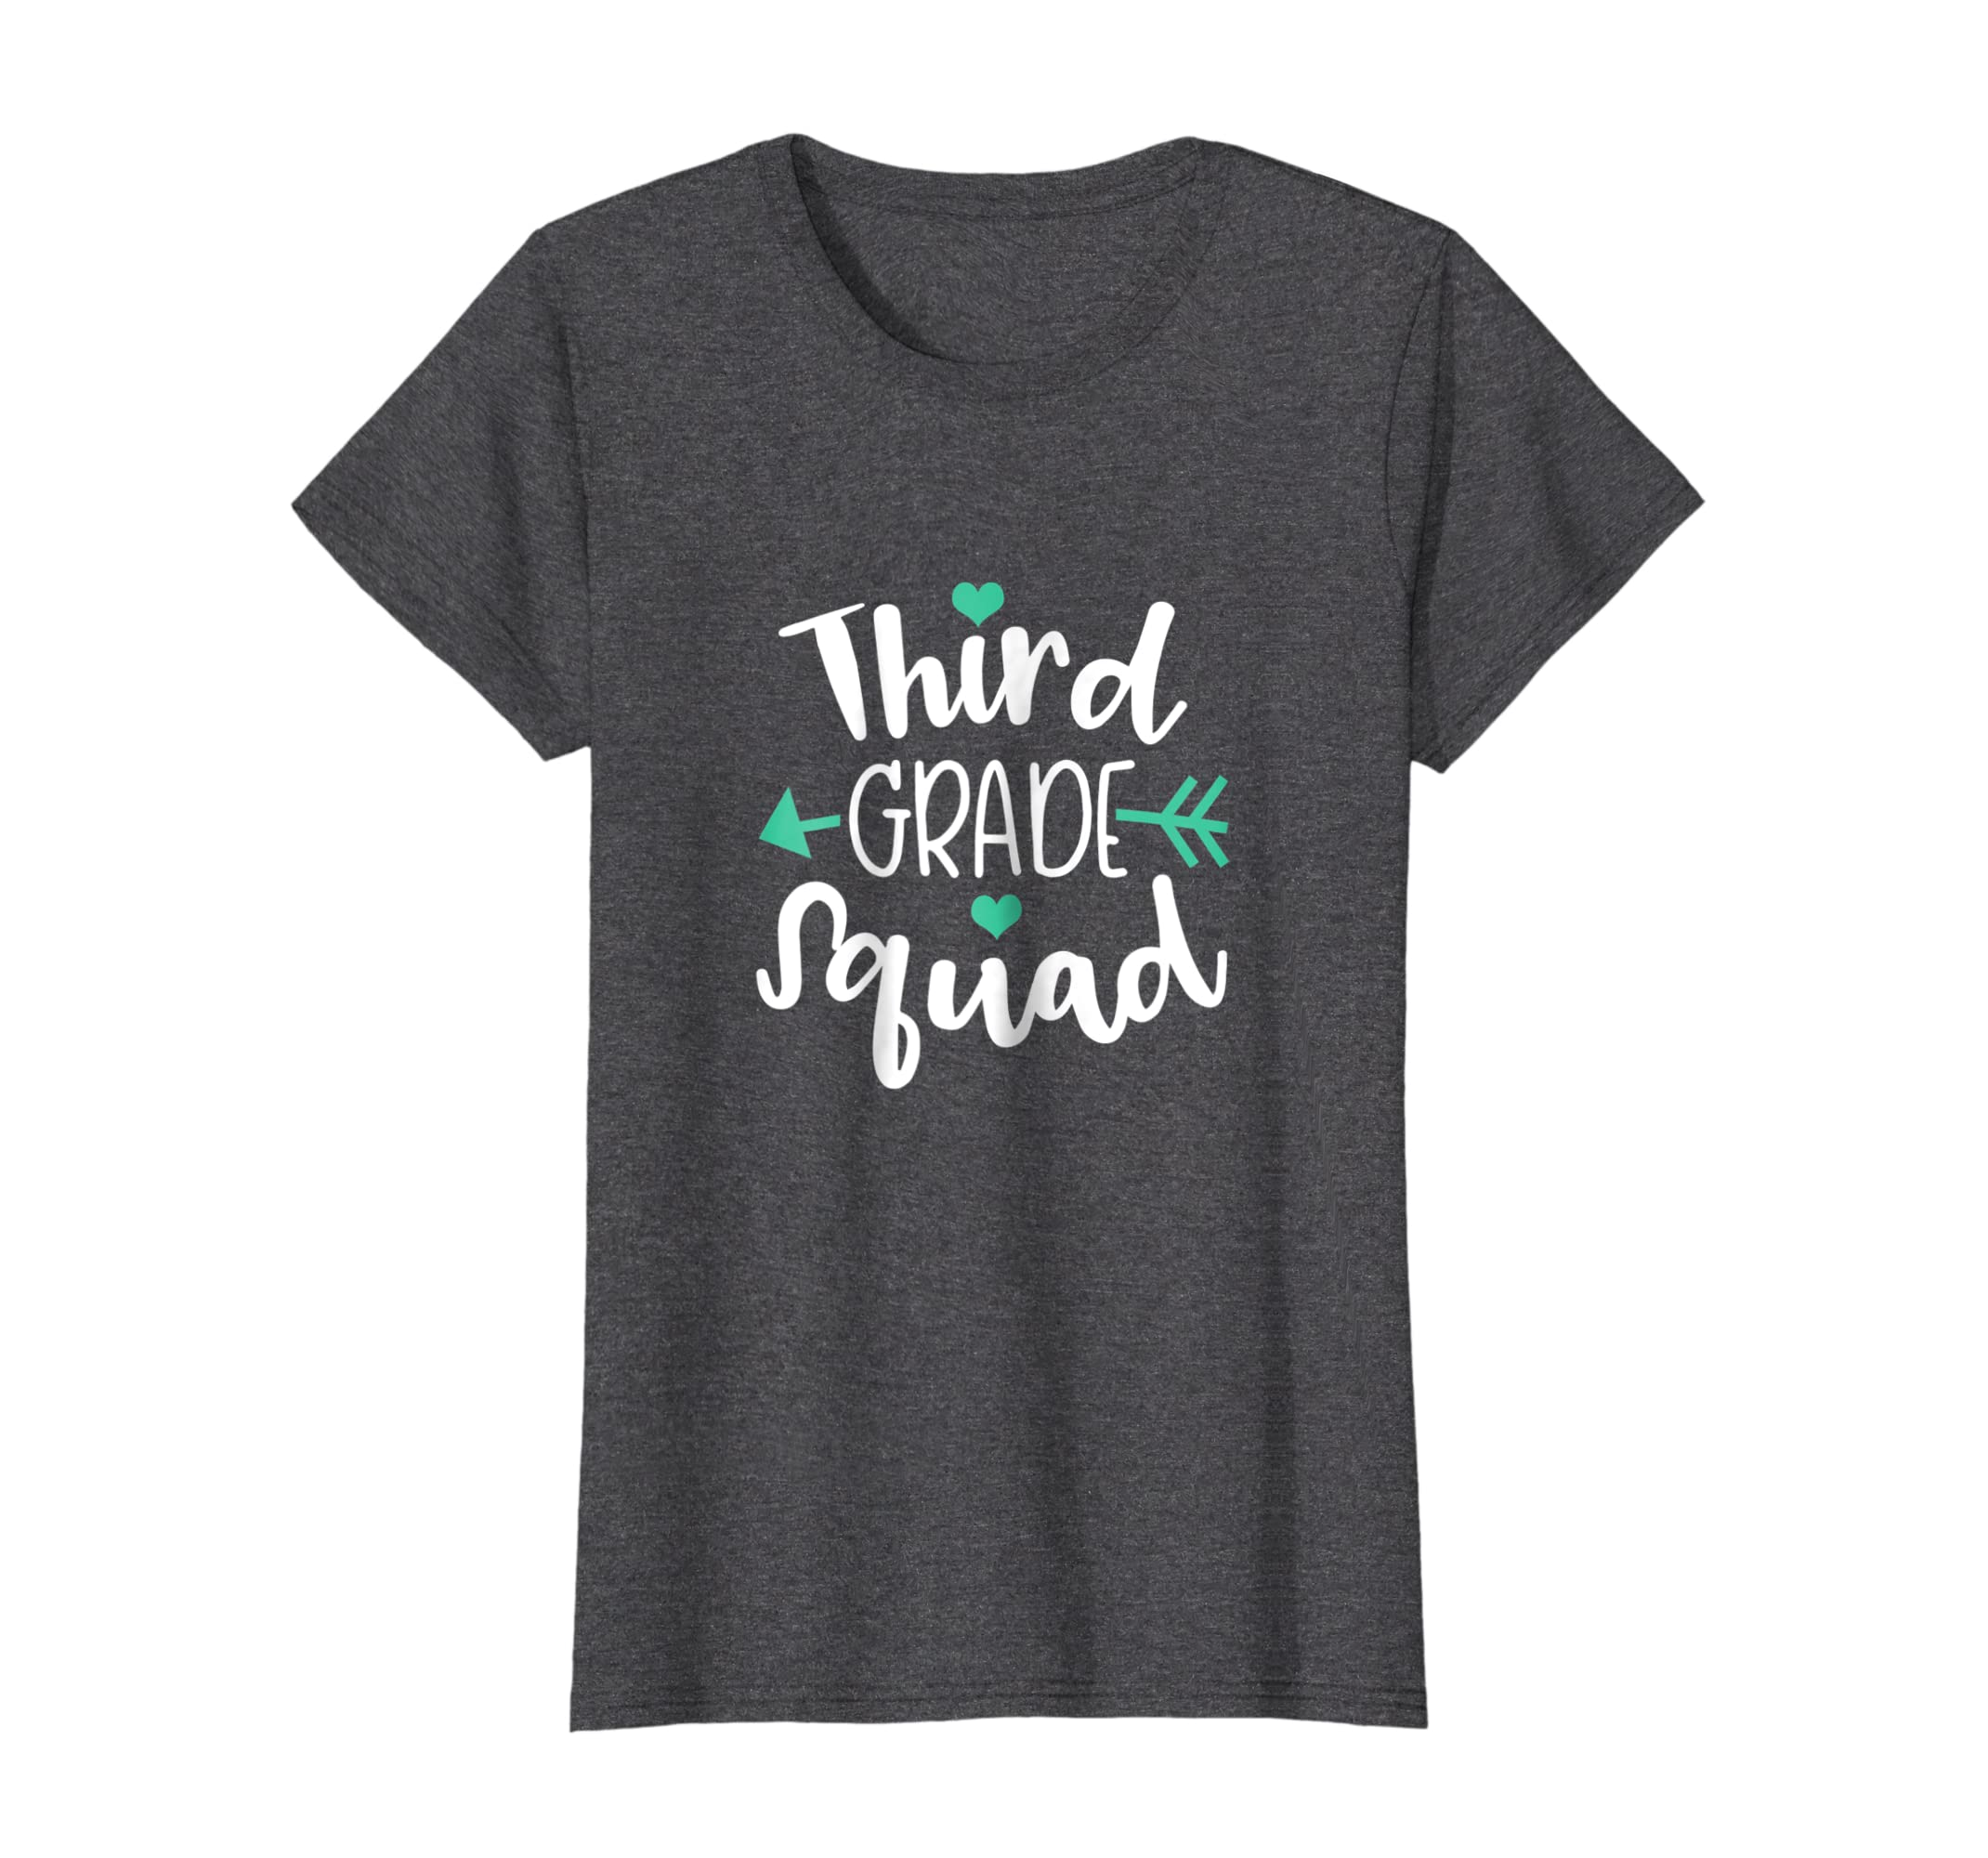 Back To School 3rd Grade Squad Shirt For Teachers Students-Teehay